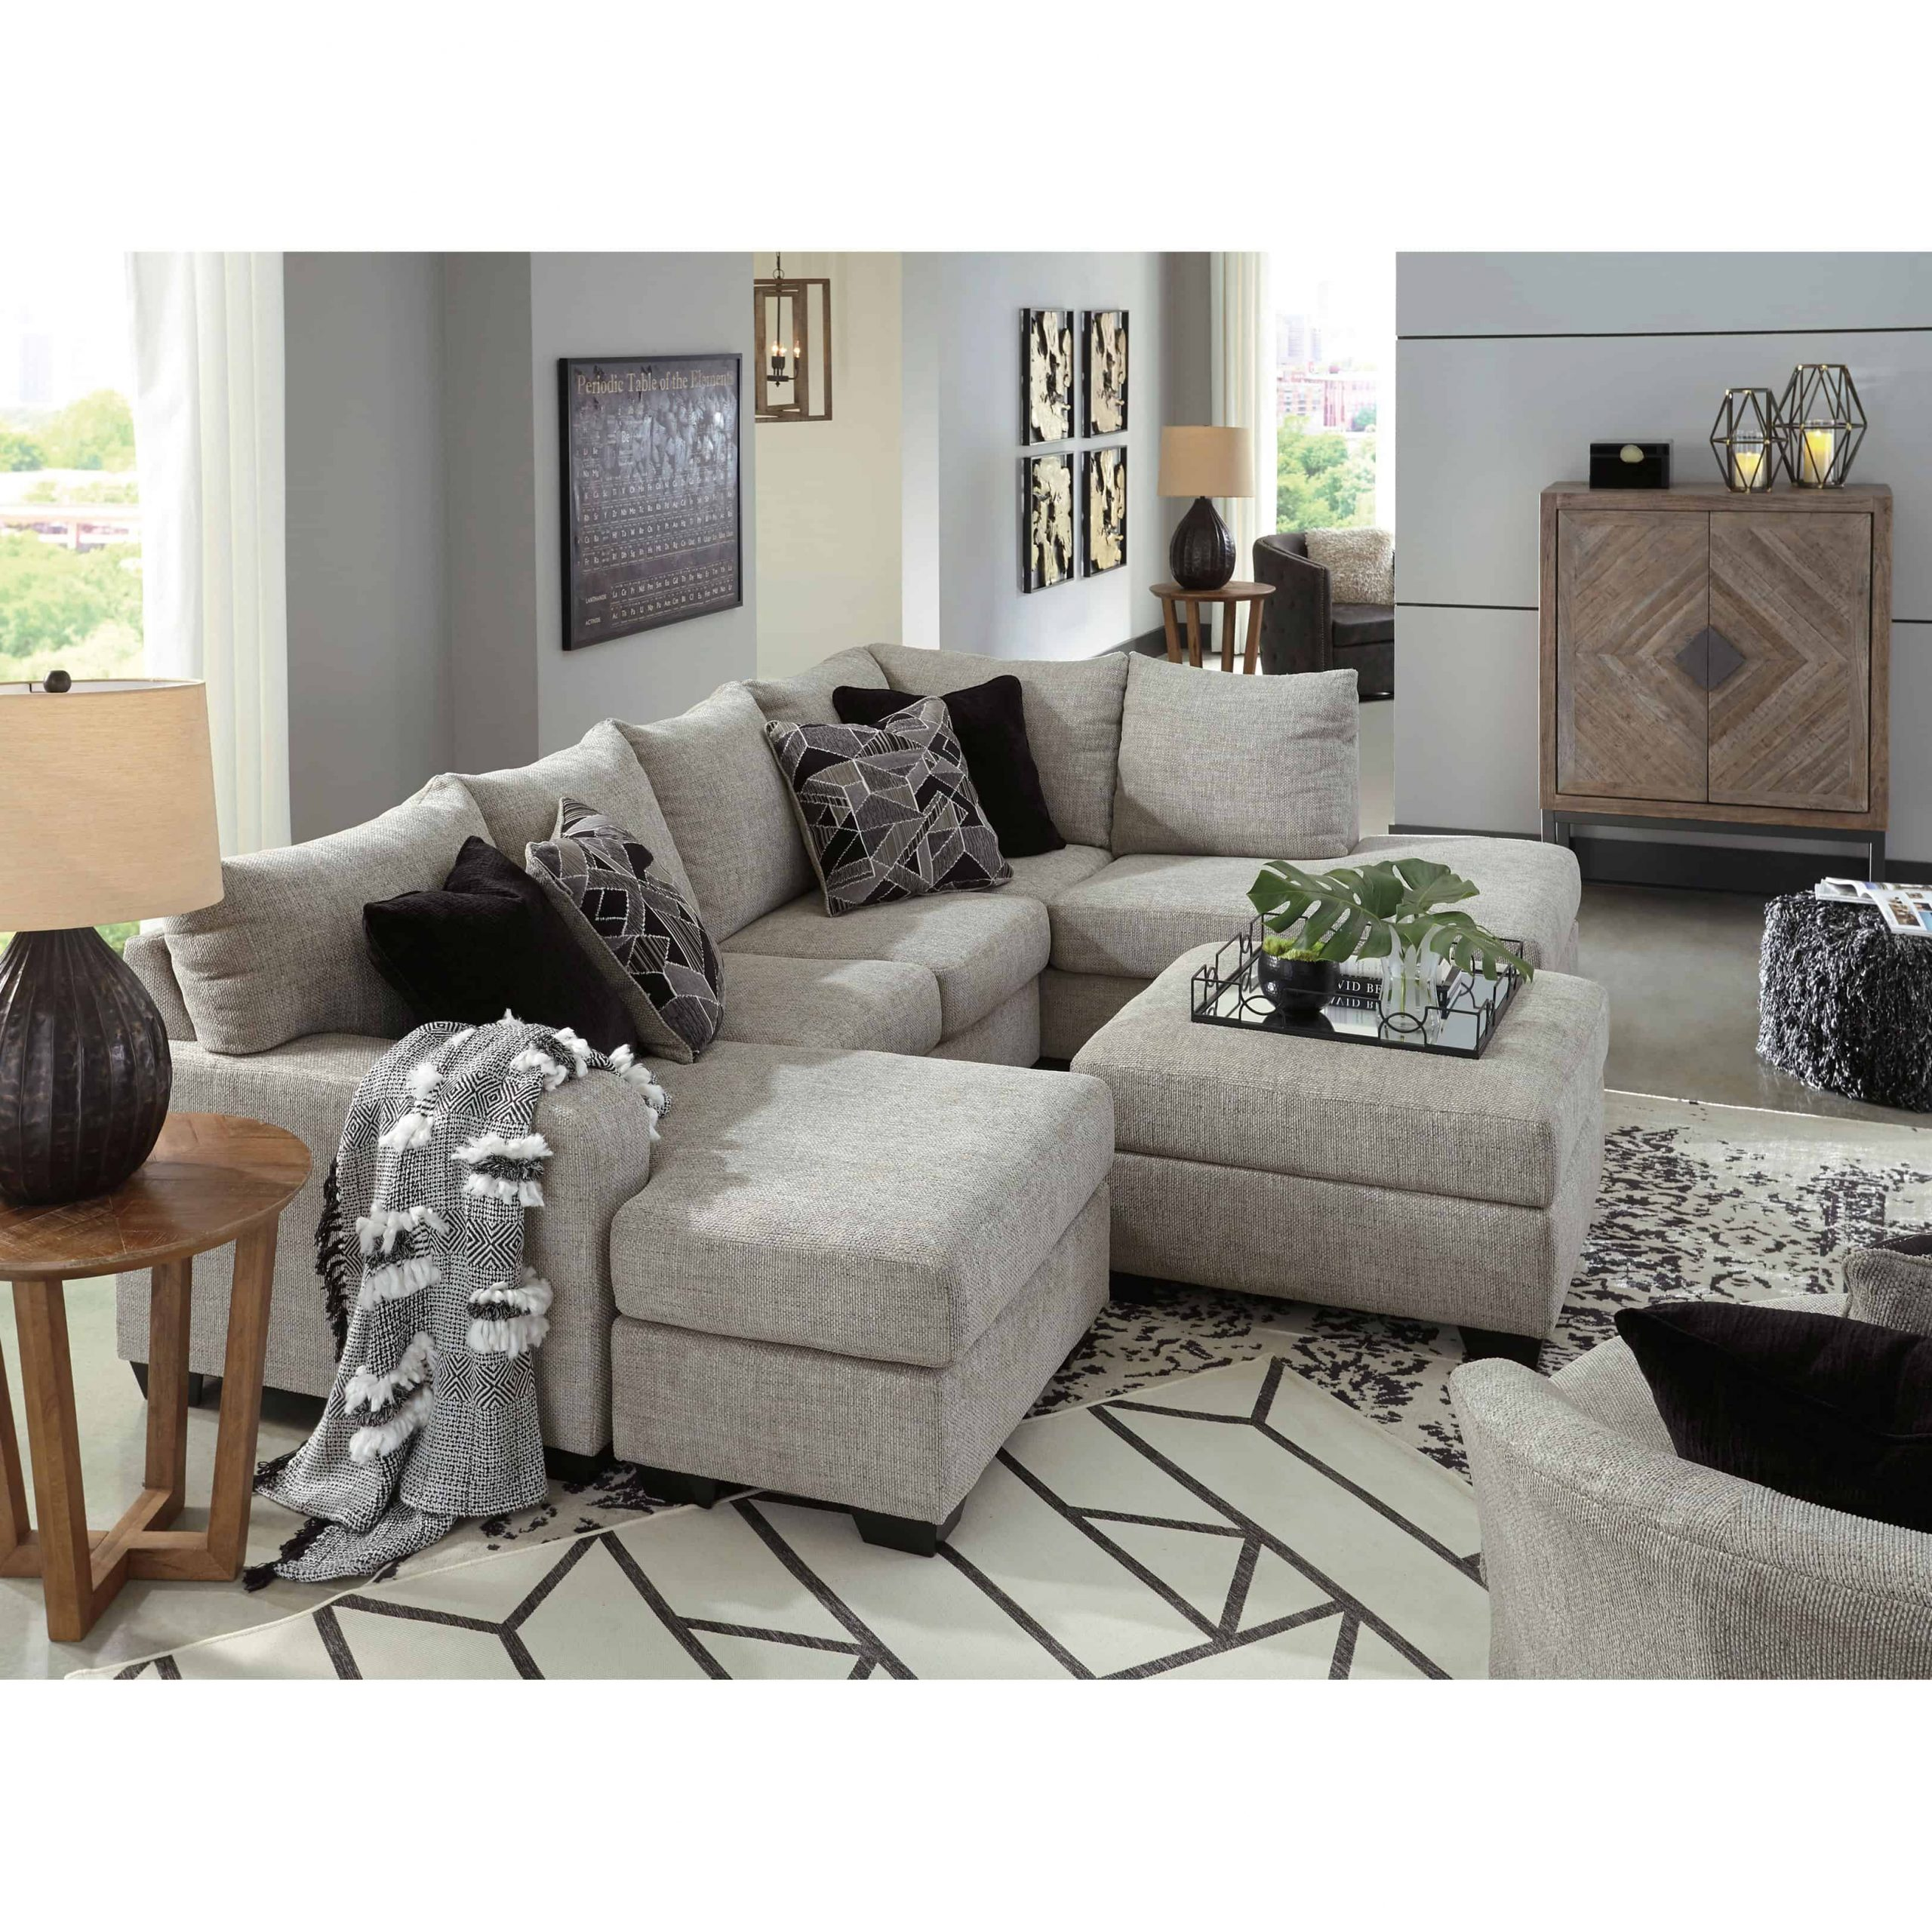 Megginson 2 Piece Raf Chaise Sectional | Furnishmyhome (View 6 of 15)